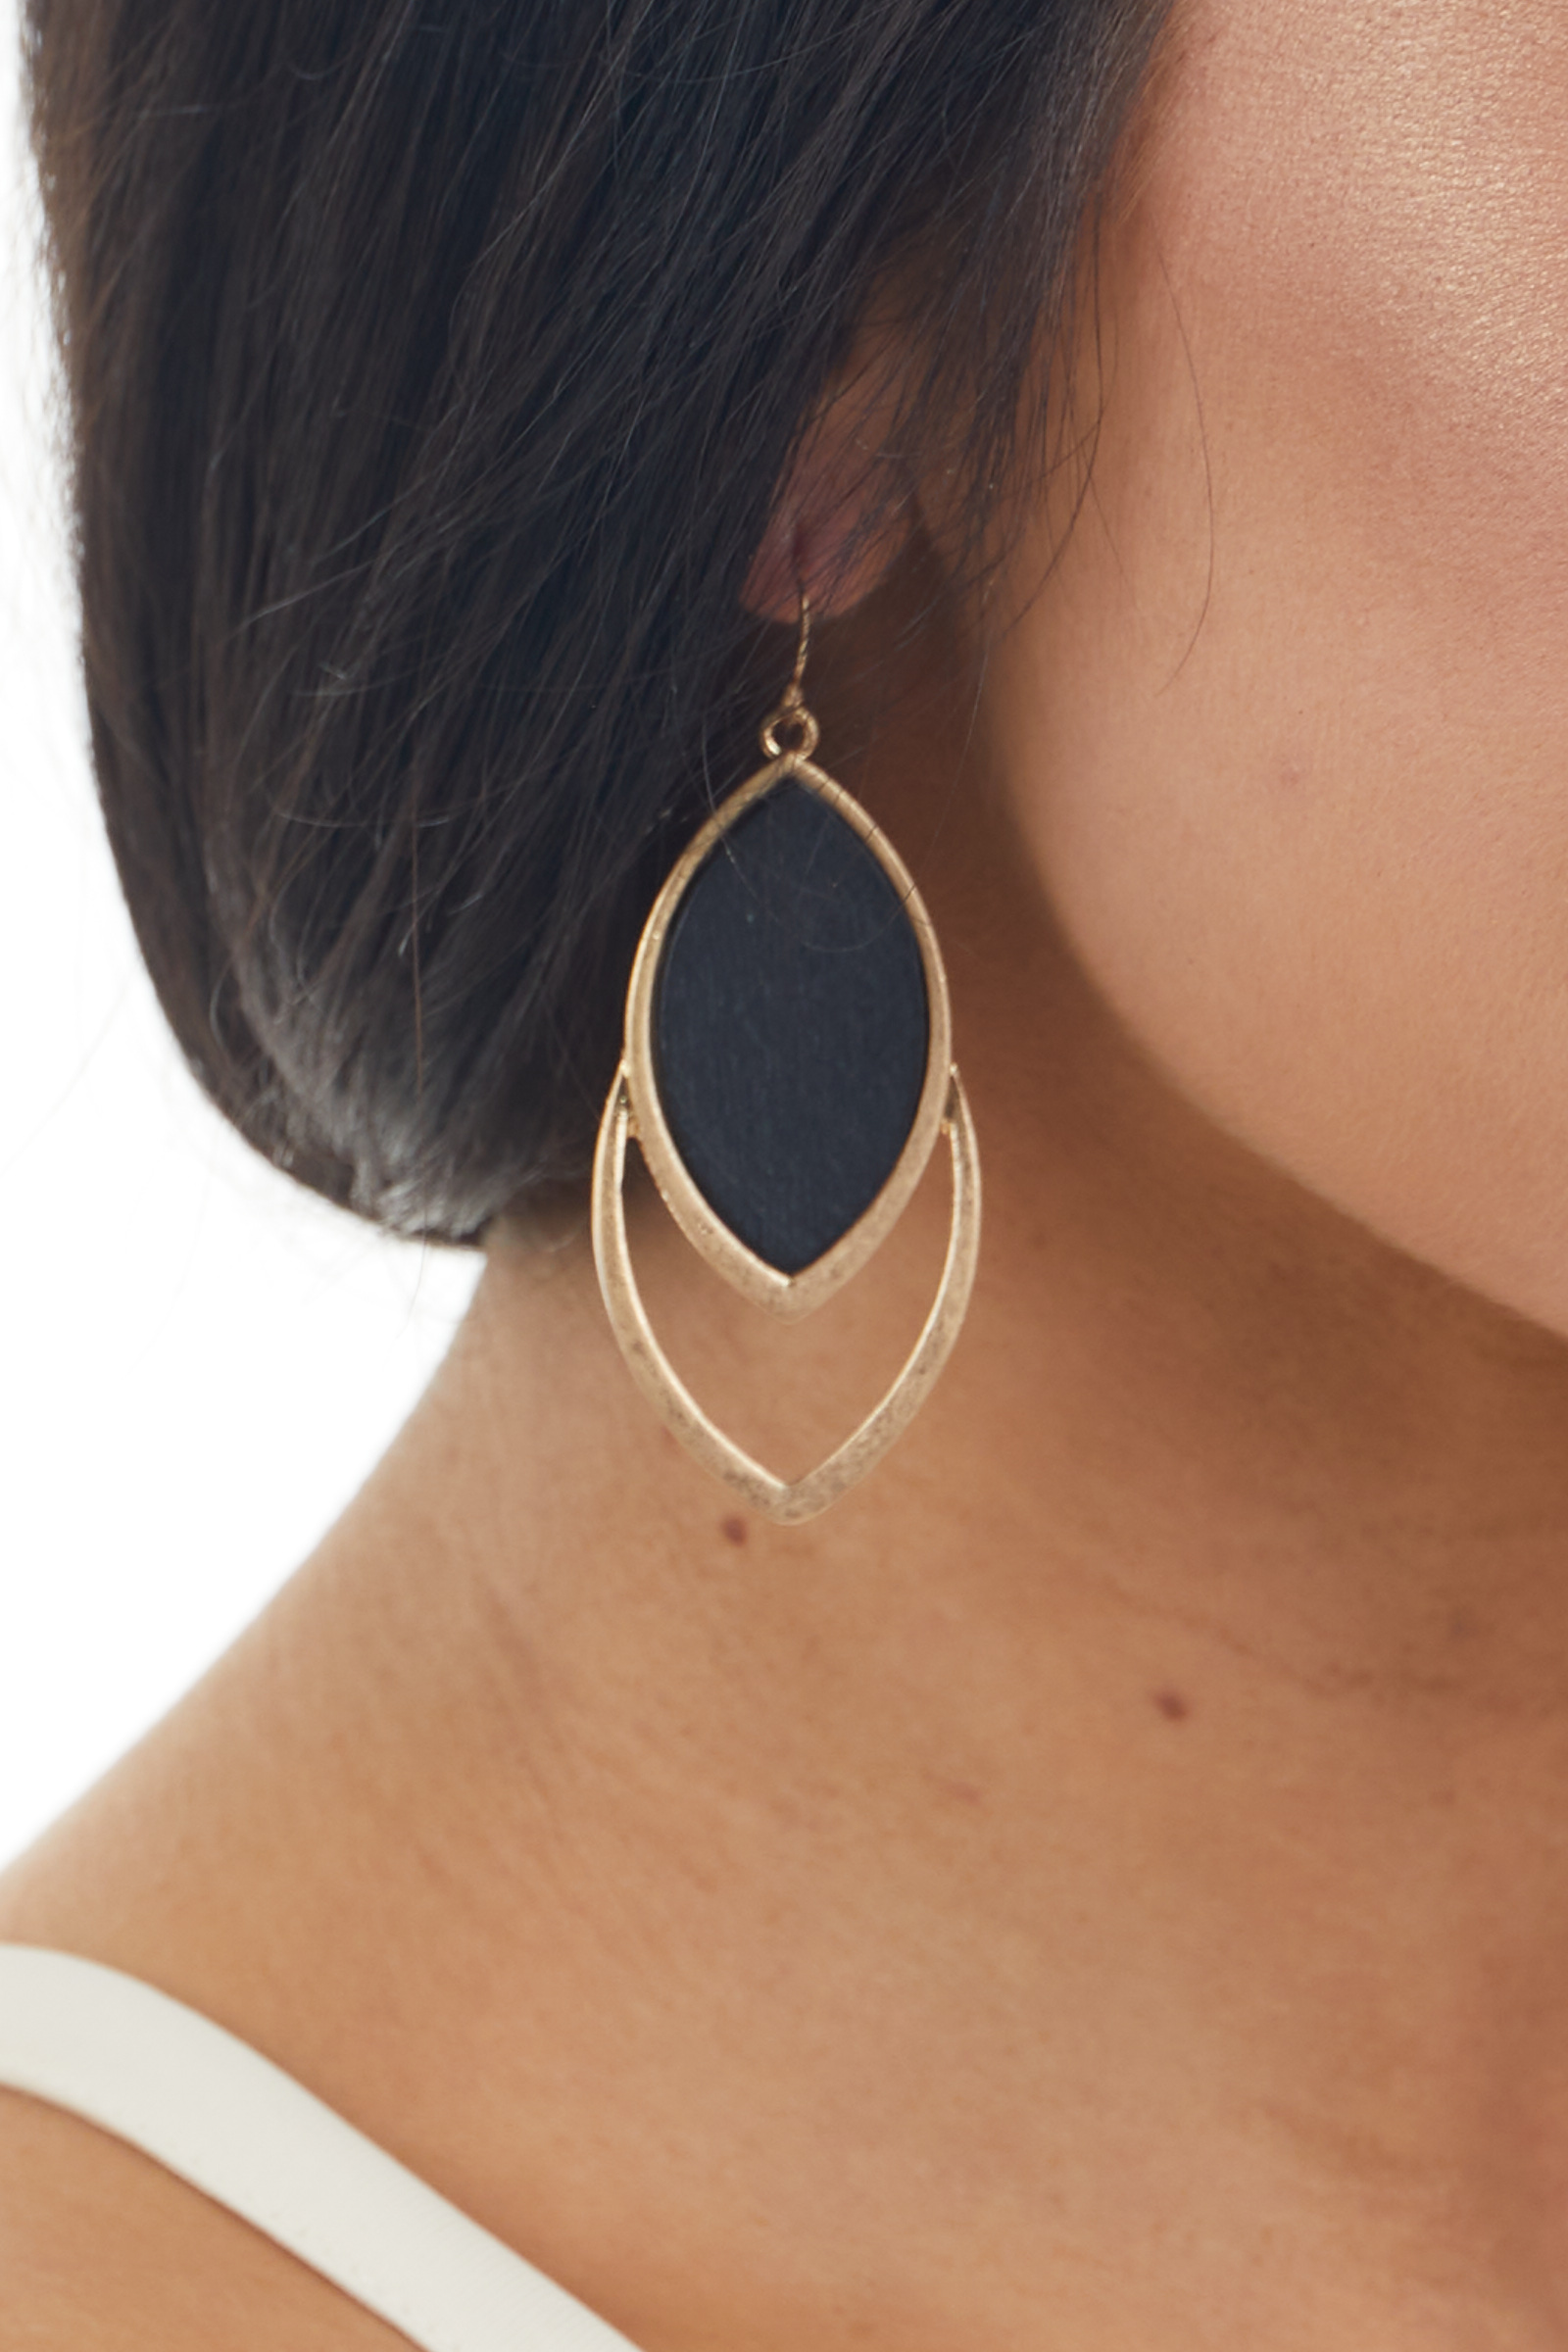 Brushed Gold and Black Double Oval Dangle Earrings